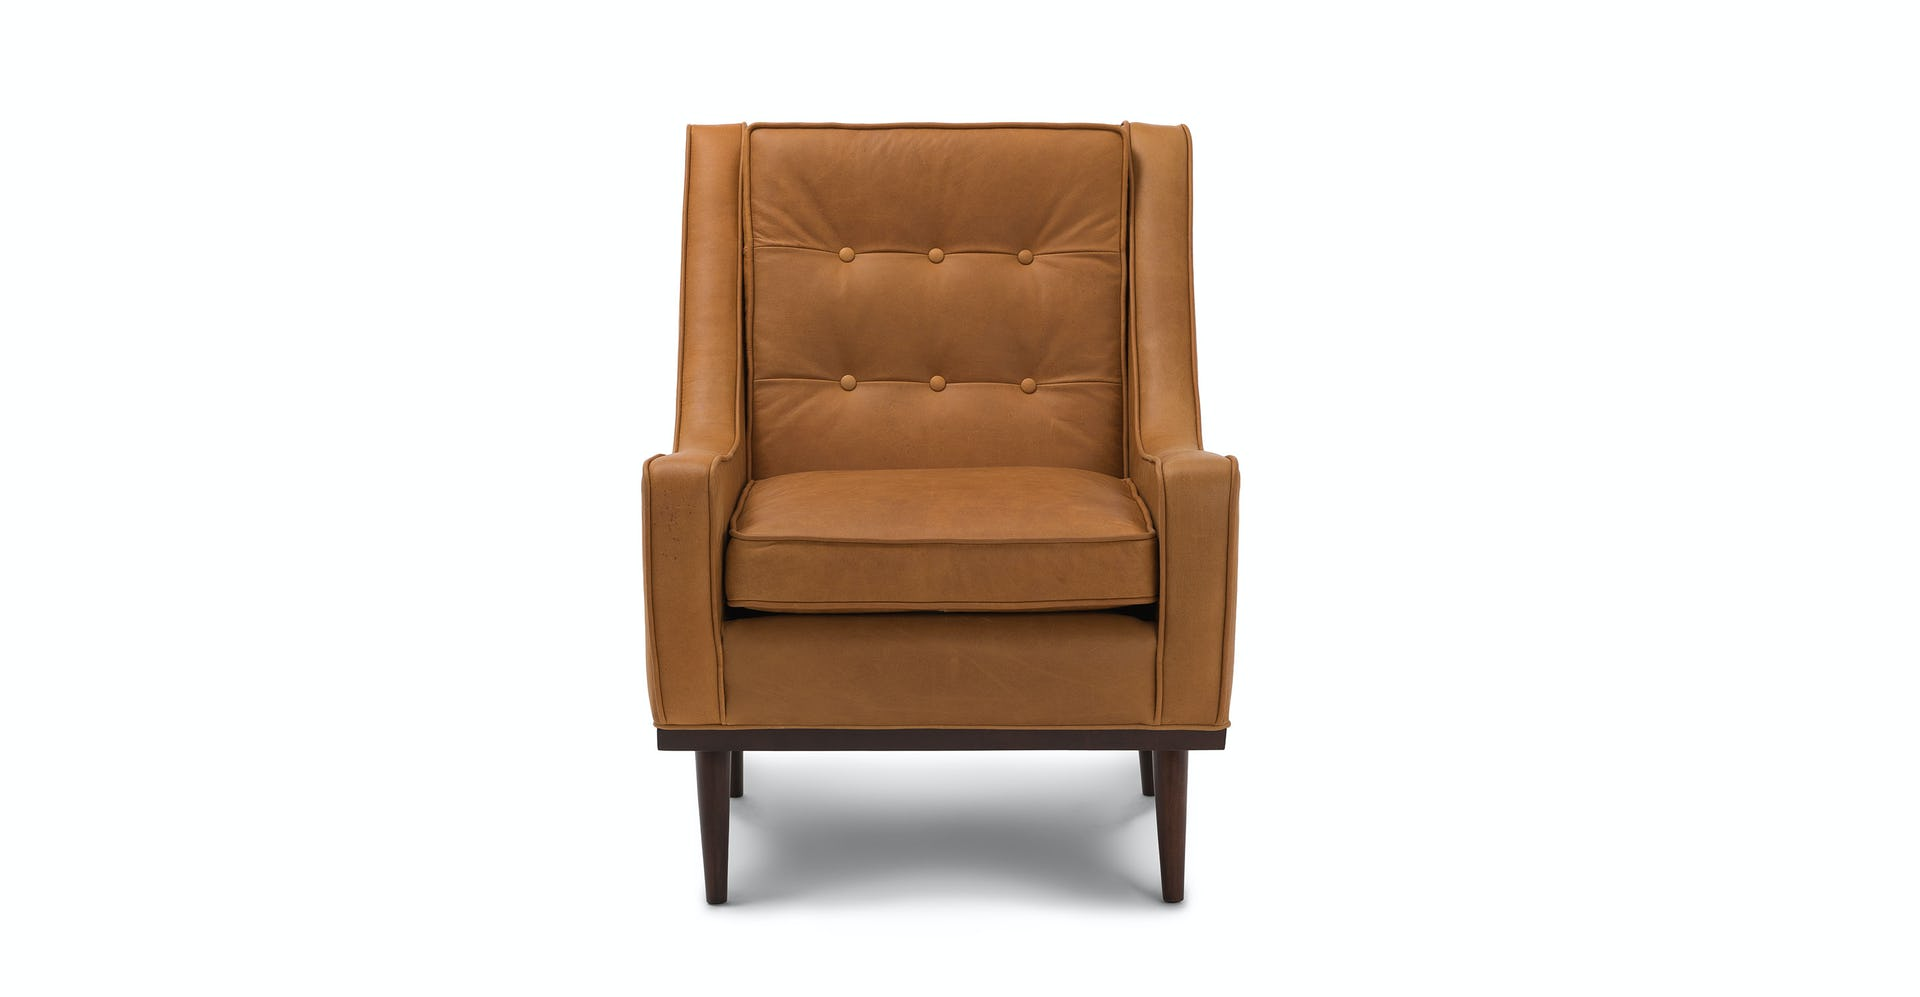 Magnificent Nina Charme Tan Armchair Andrewgaddart Wooden Chair Designs For Living Room Andrewgaddartcom